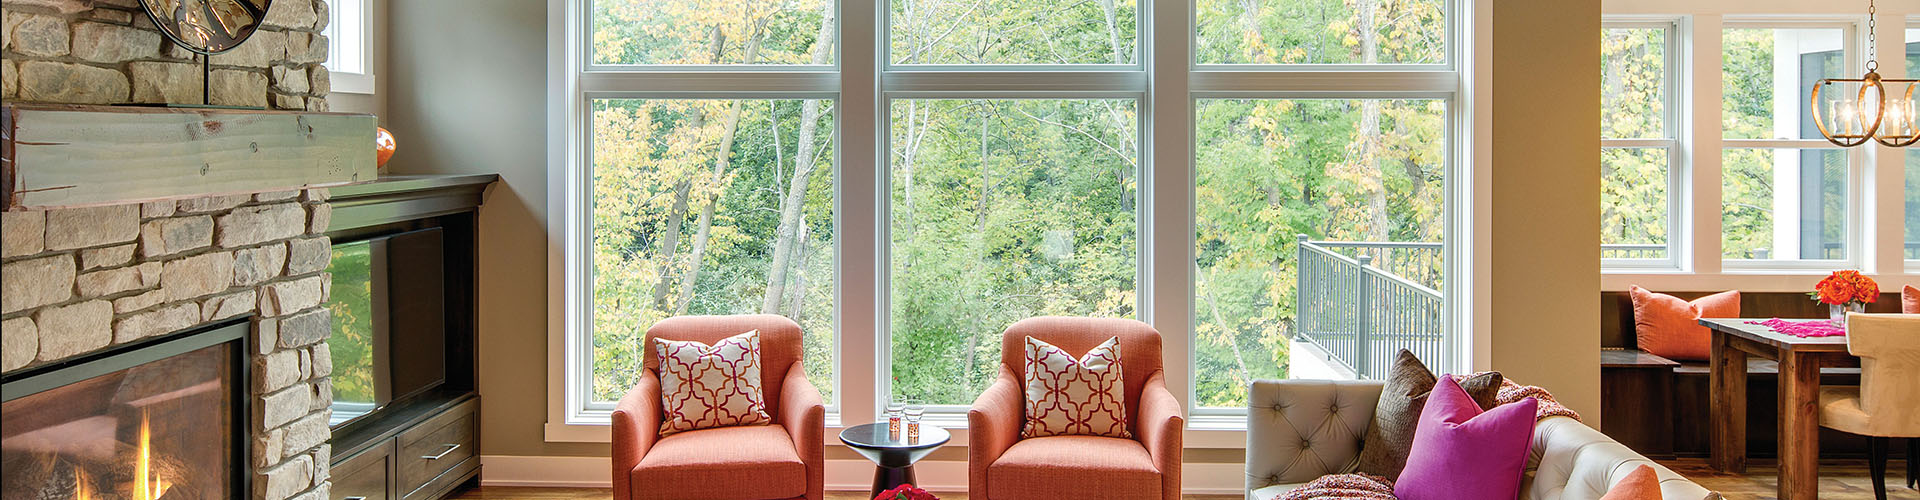 Andersen Single-Hung Picture windows Denver Centennial